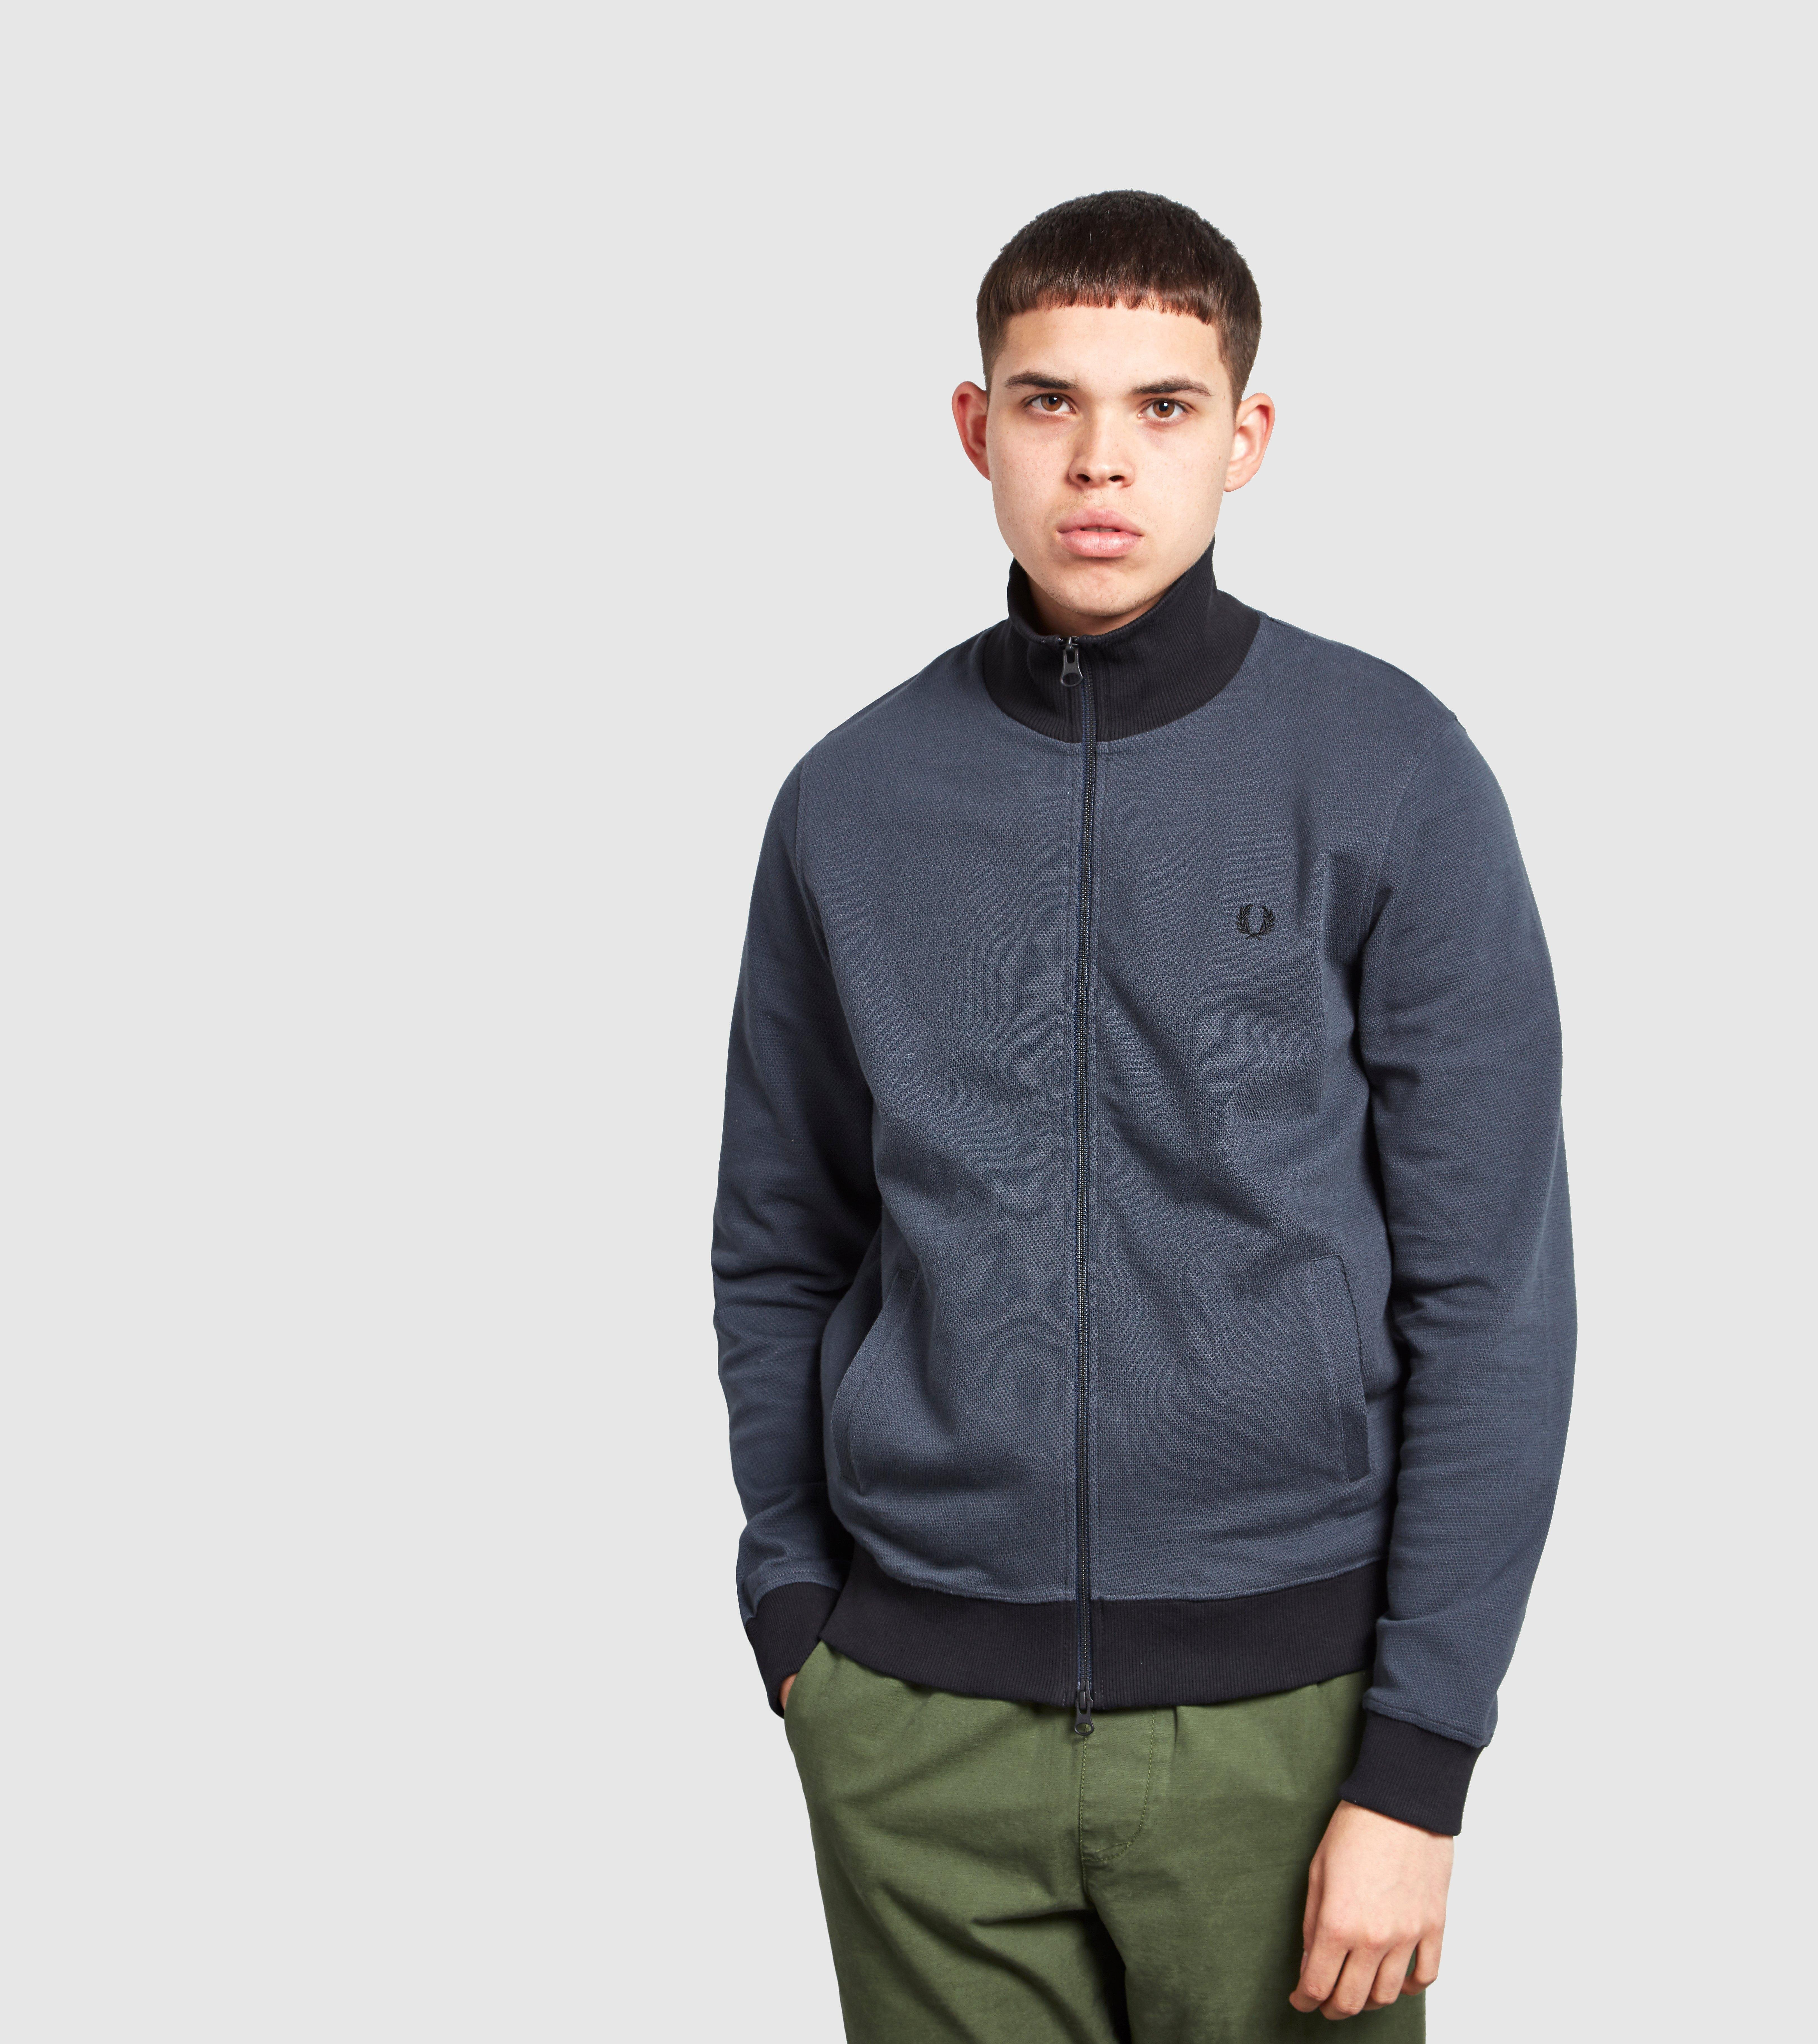 Fred Perry Pique Track Jacket - size? Exclusive